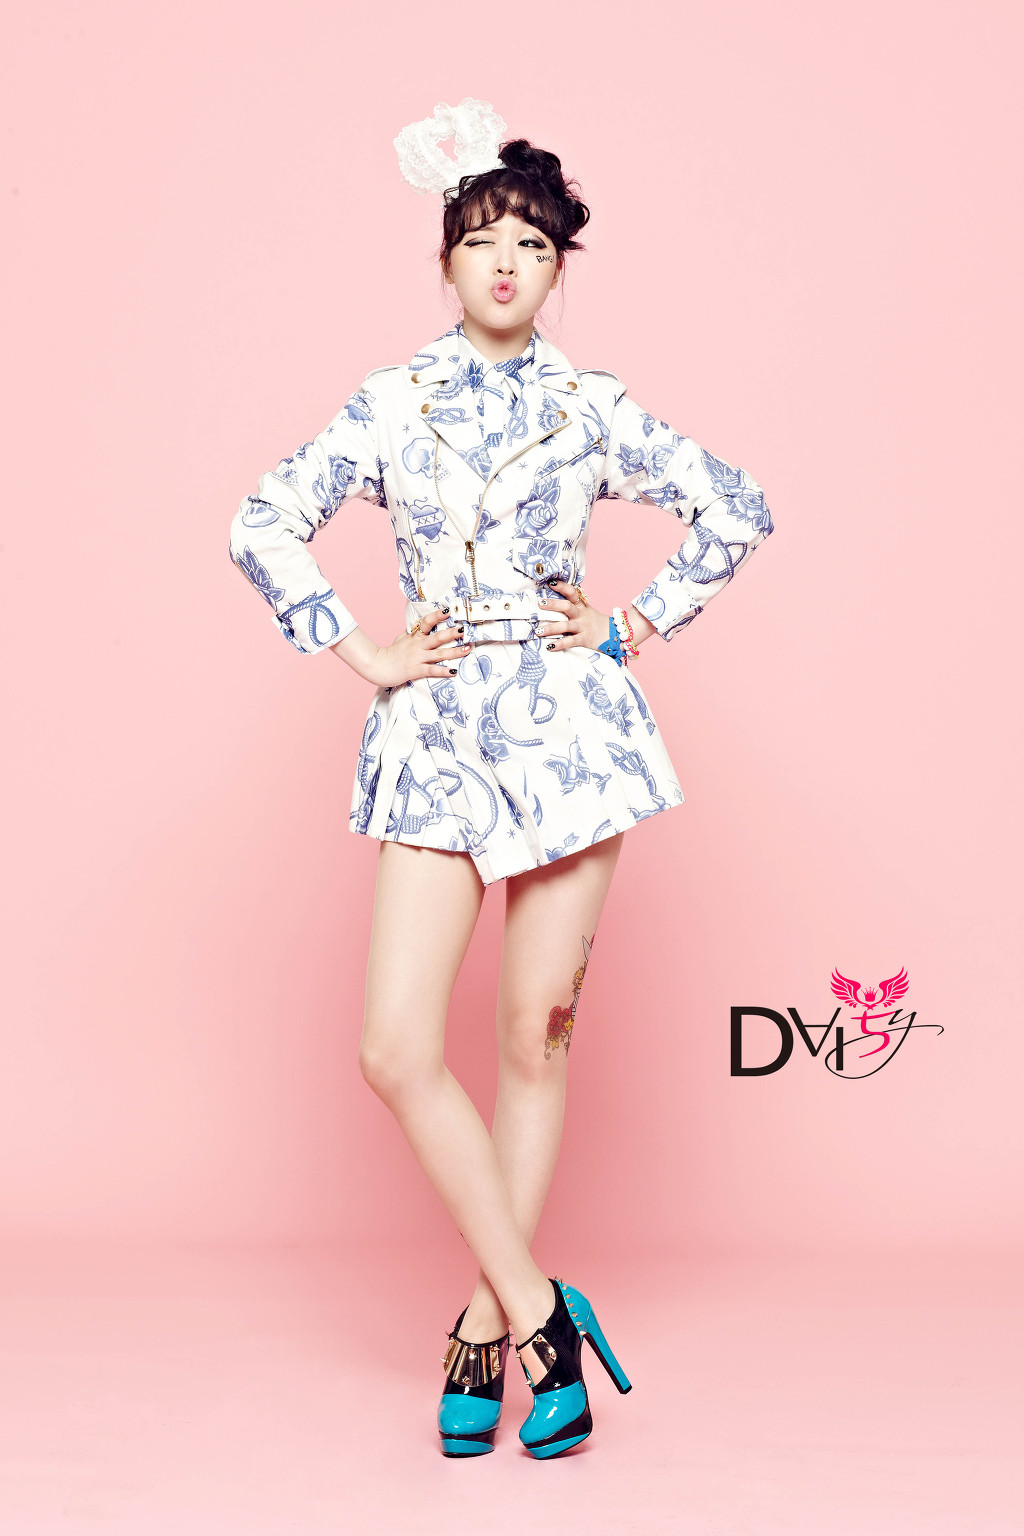 girls day wallpaper by - photo #24